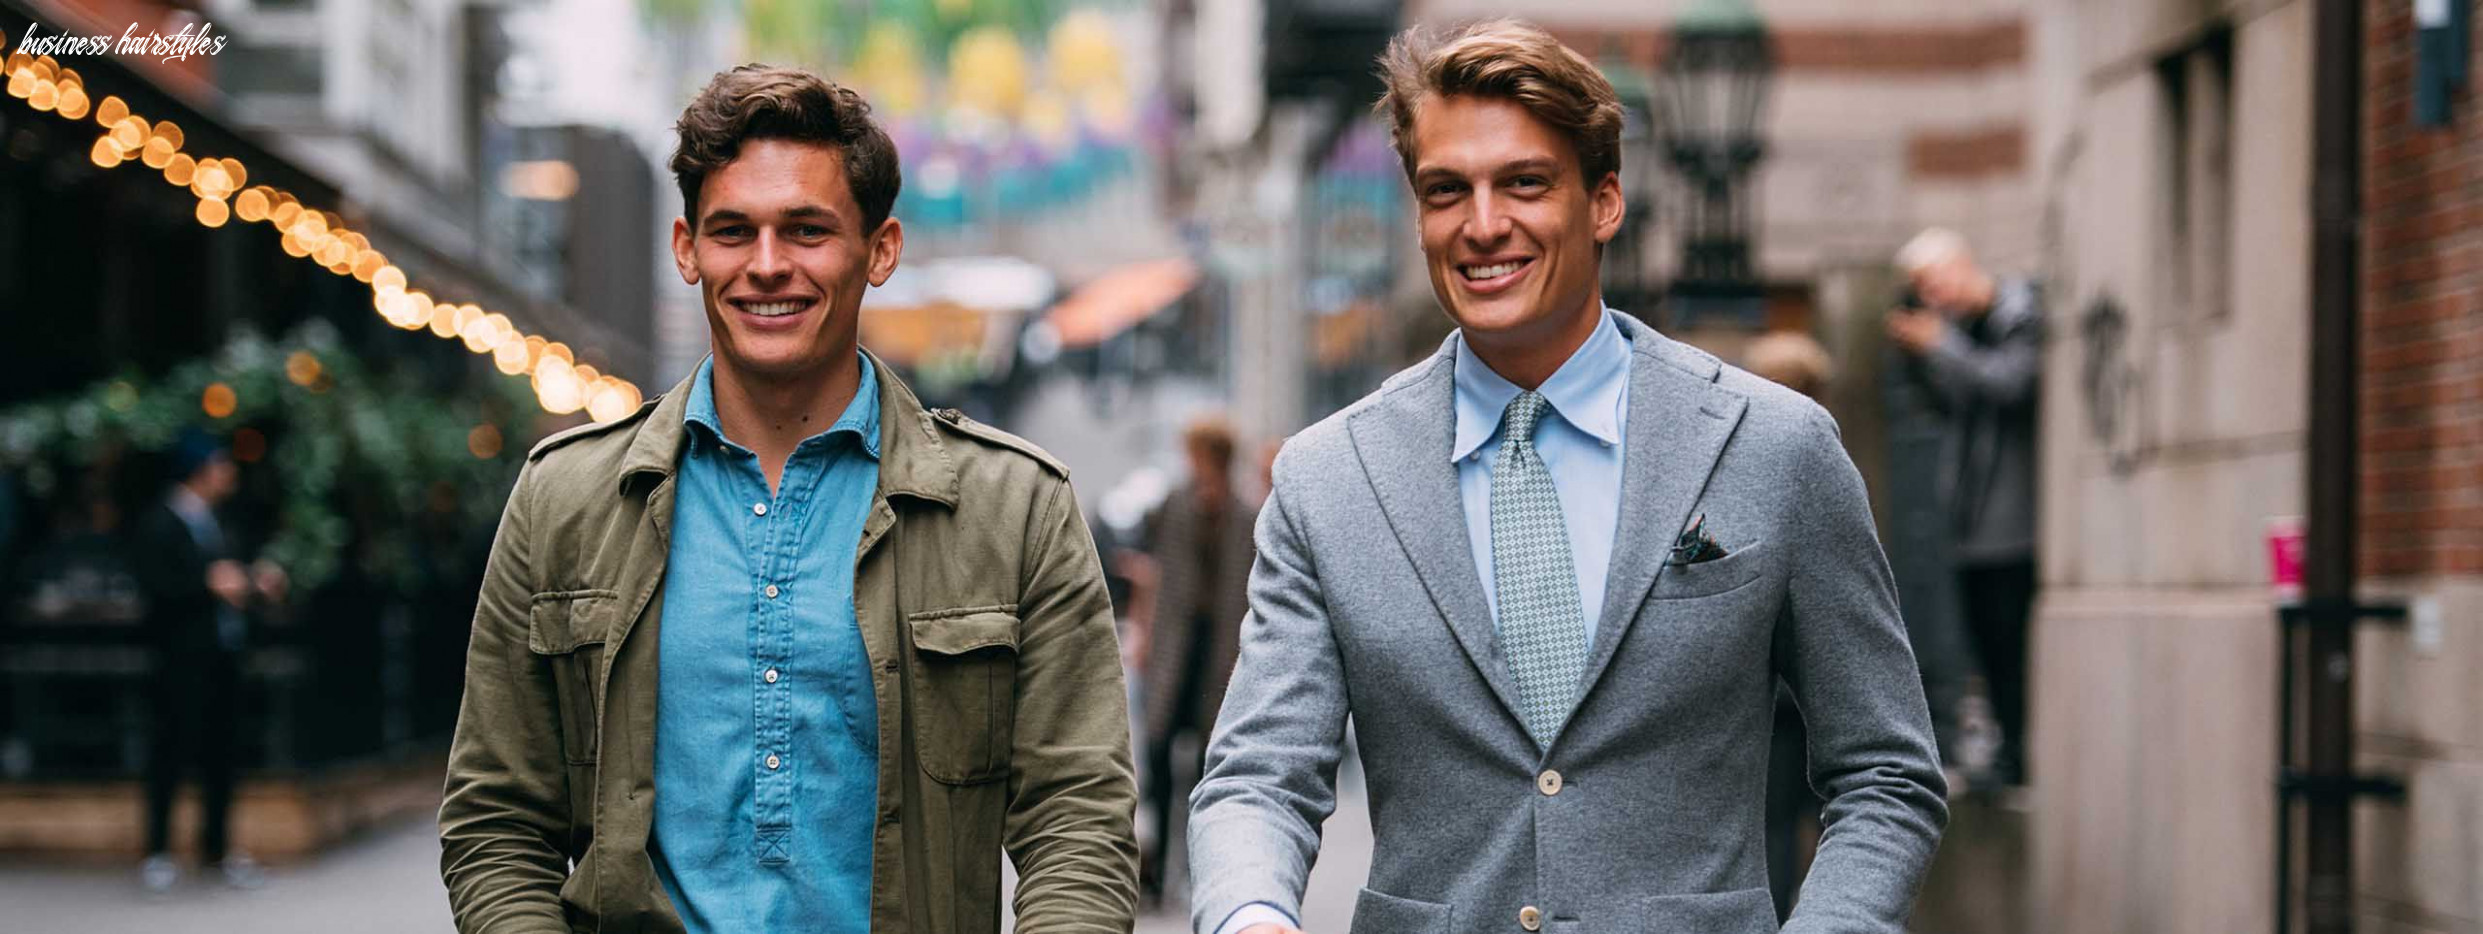 The best business hairstyles for men business hairstyles